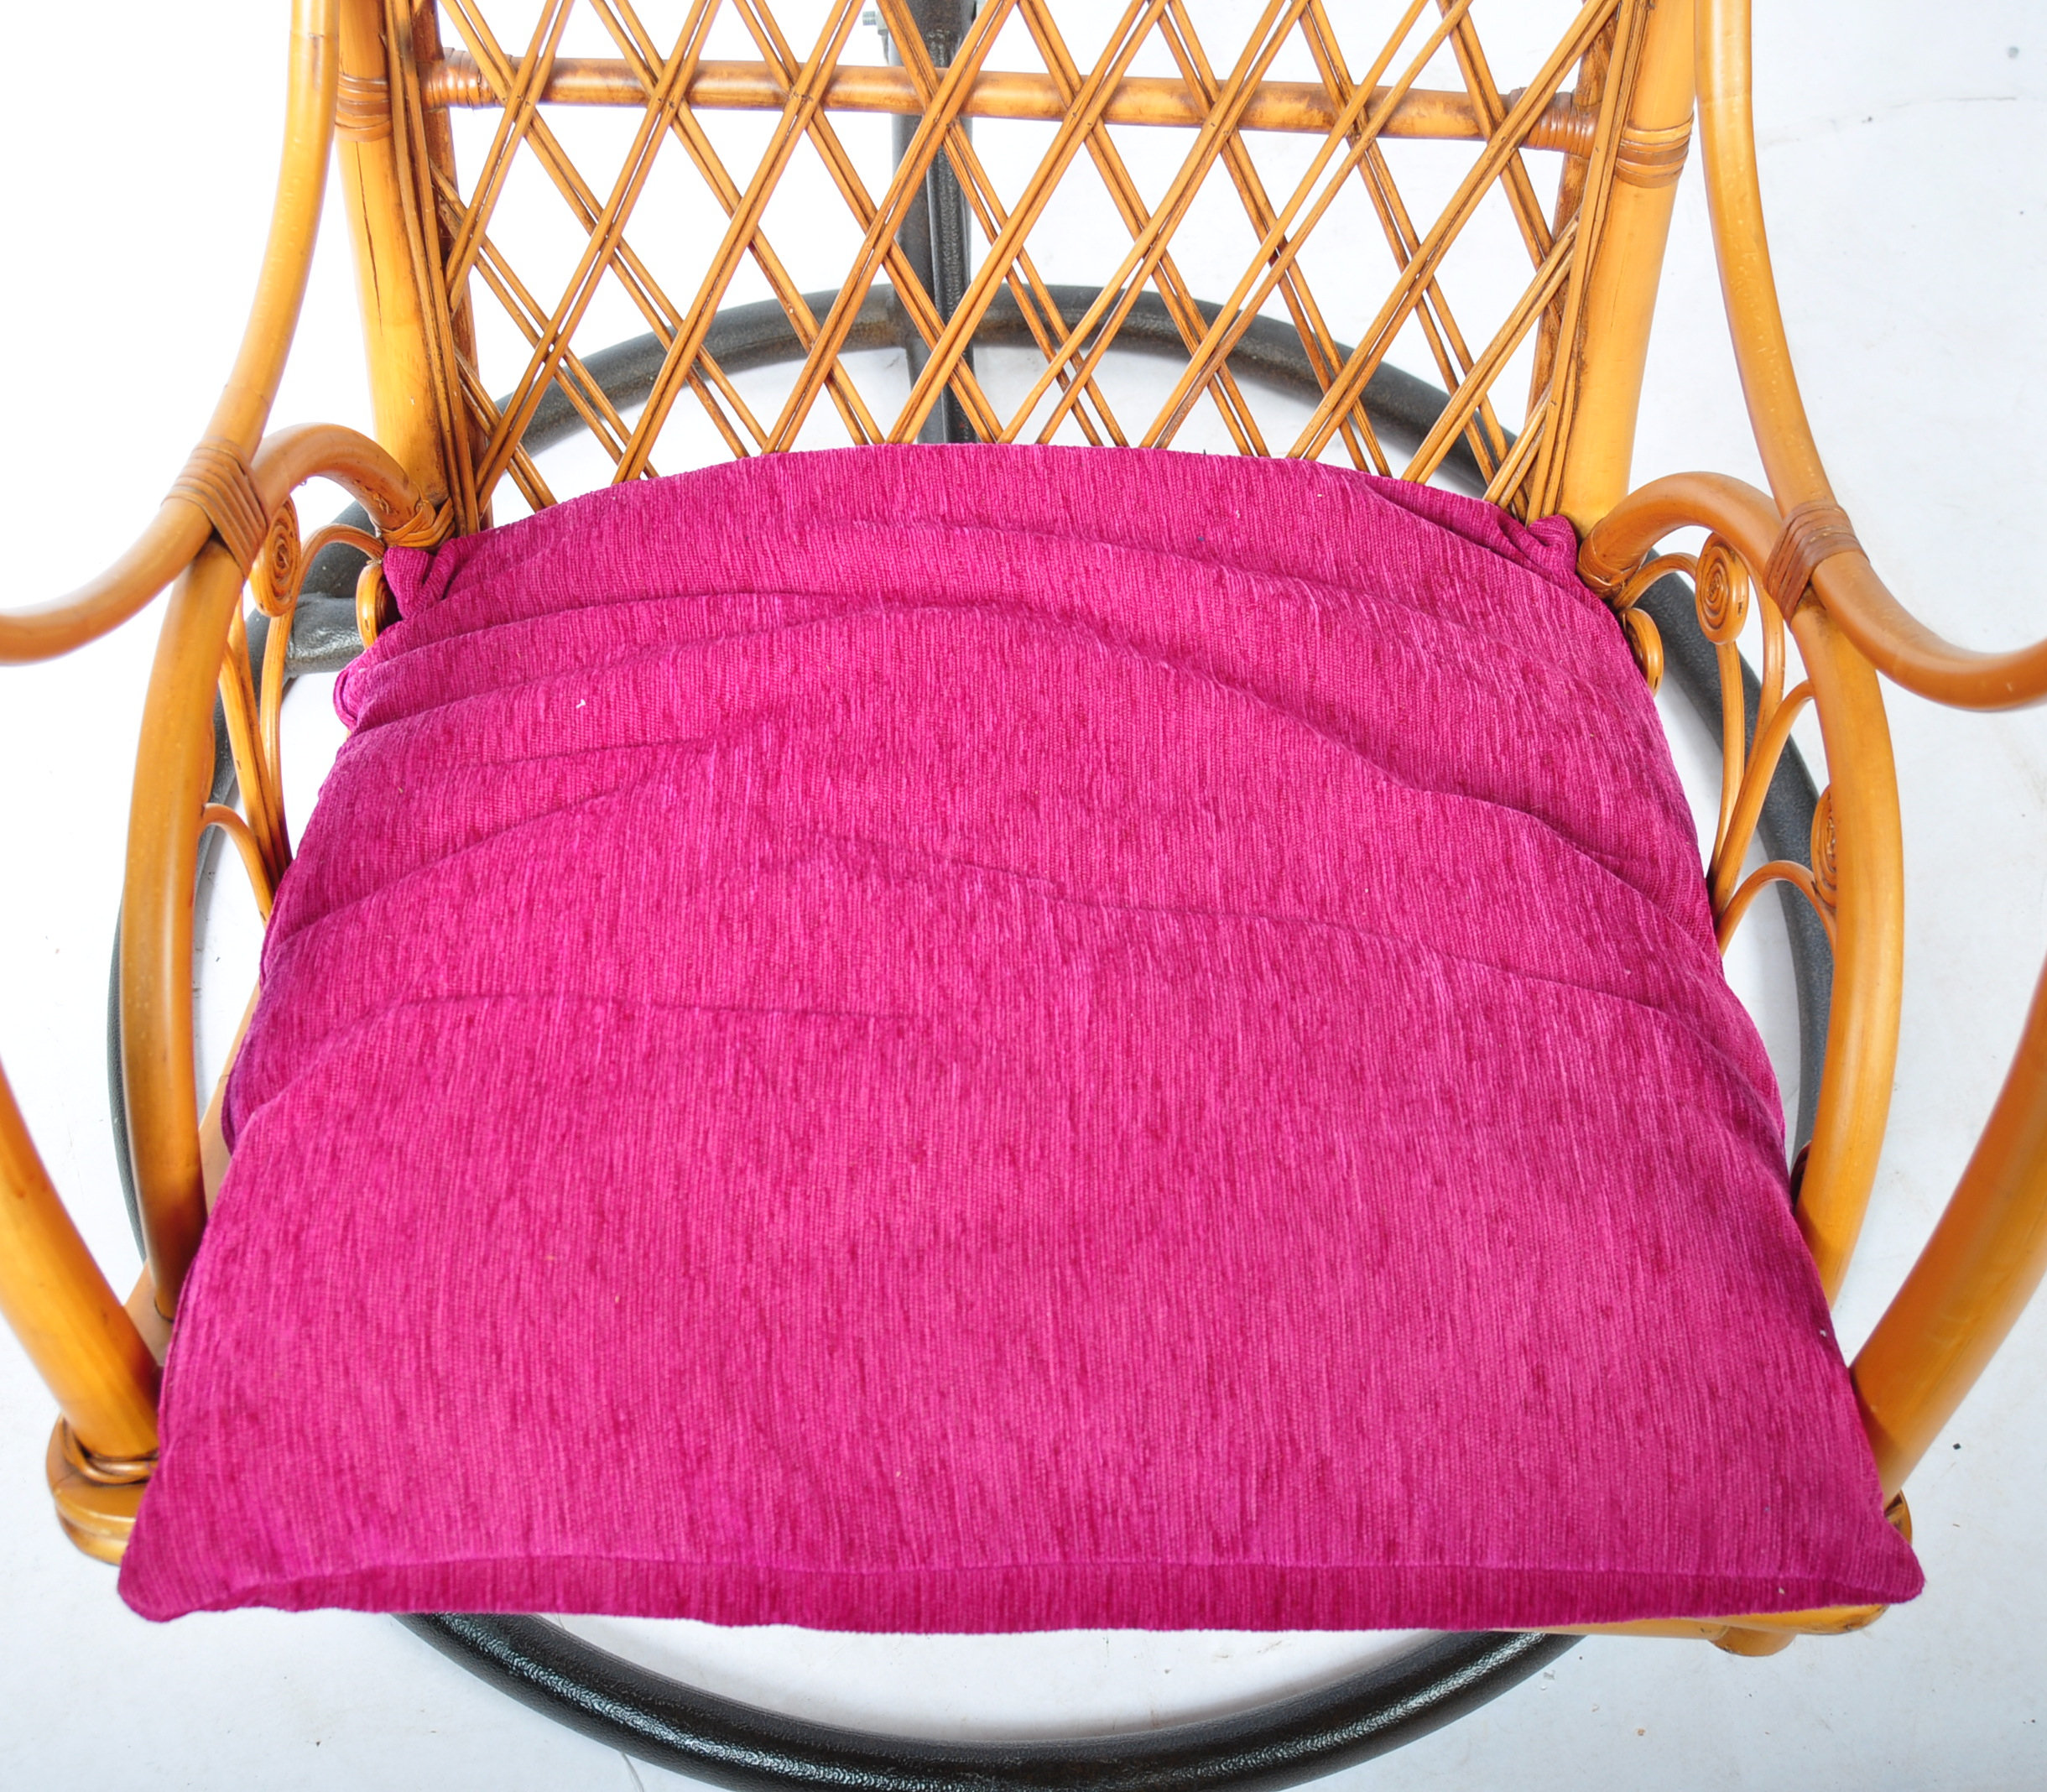 HANGING BASKET EGG SHAPED PENDULUM CHAIR OF WICKER CONSTRUCTION - Image 8 of 8